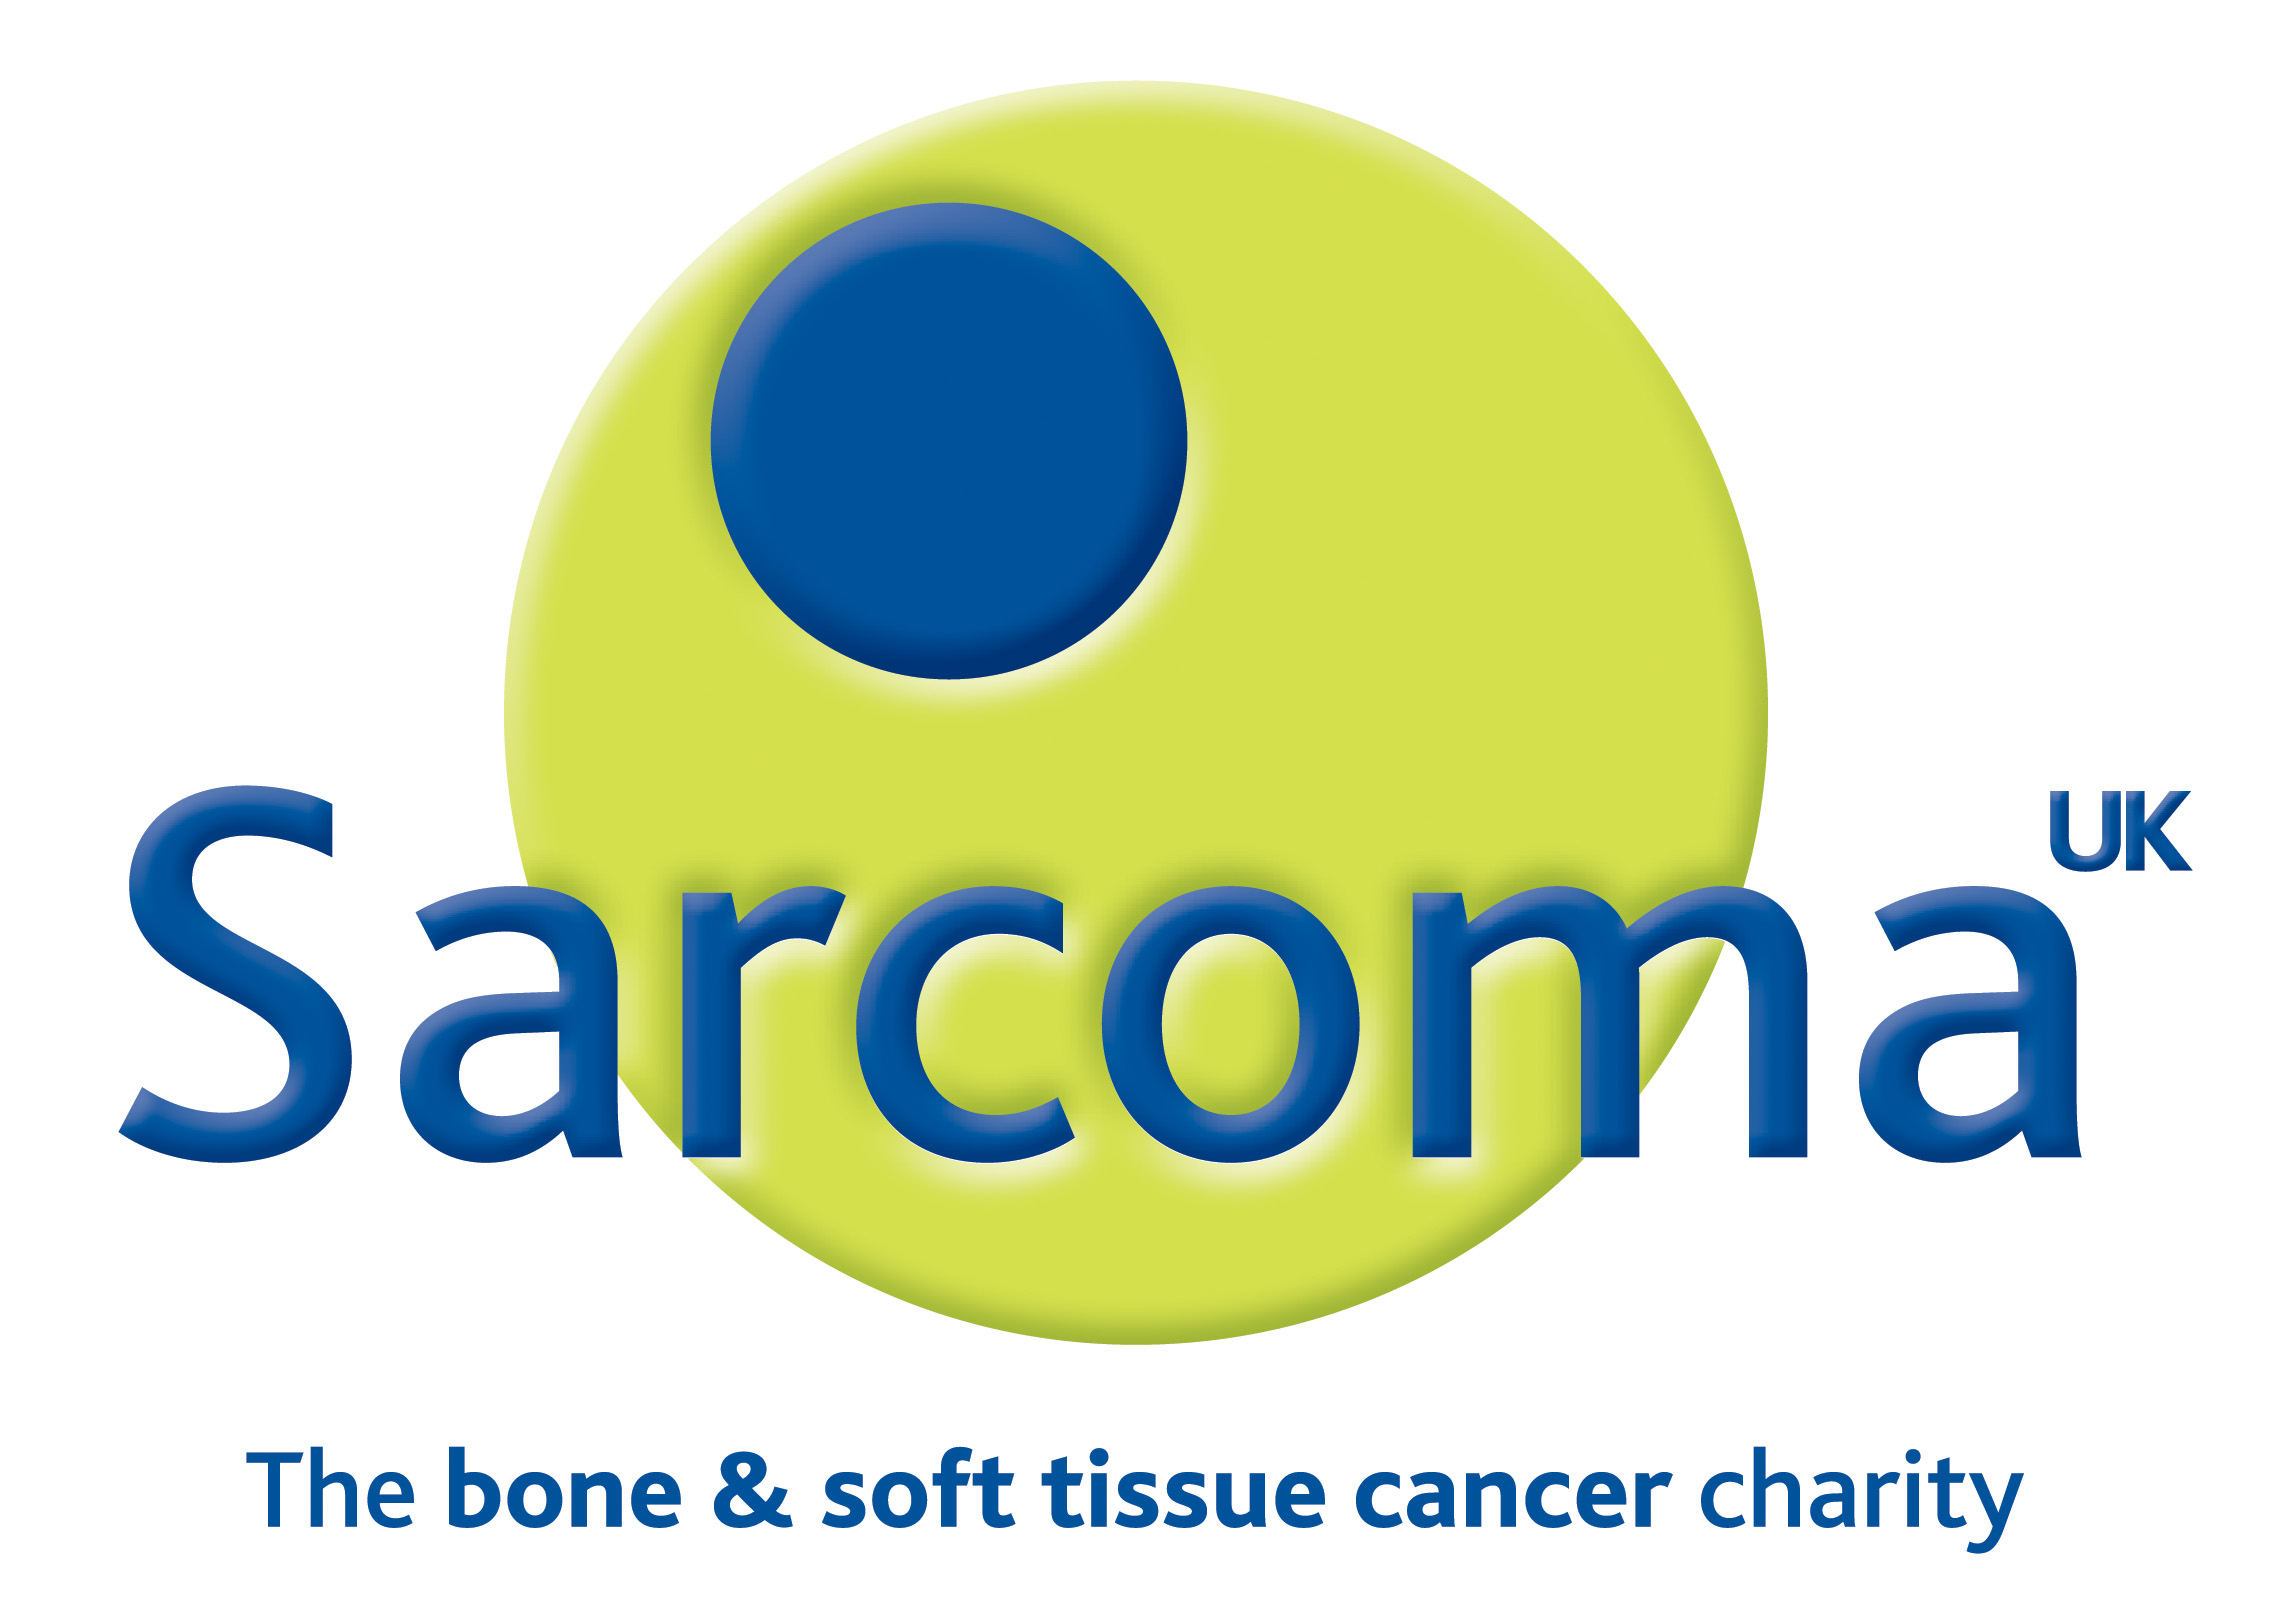 Sarcoma-UK.jpg